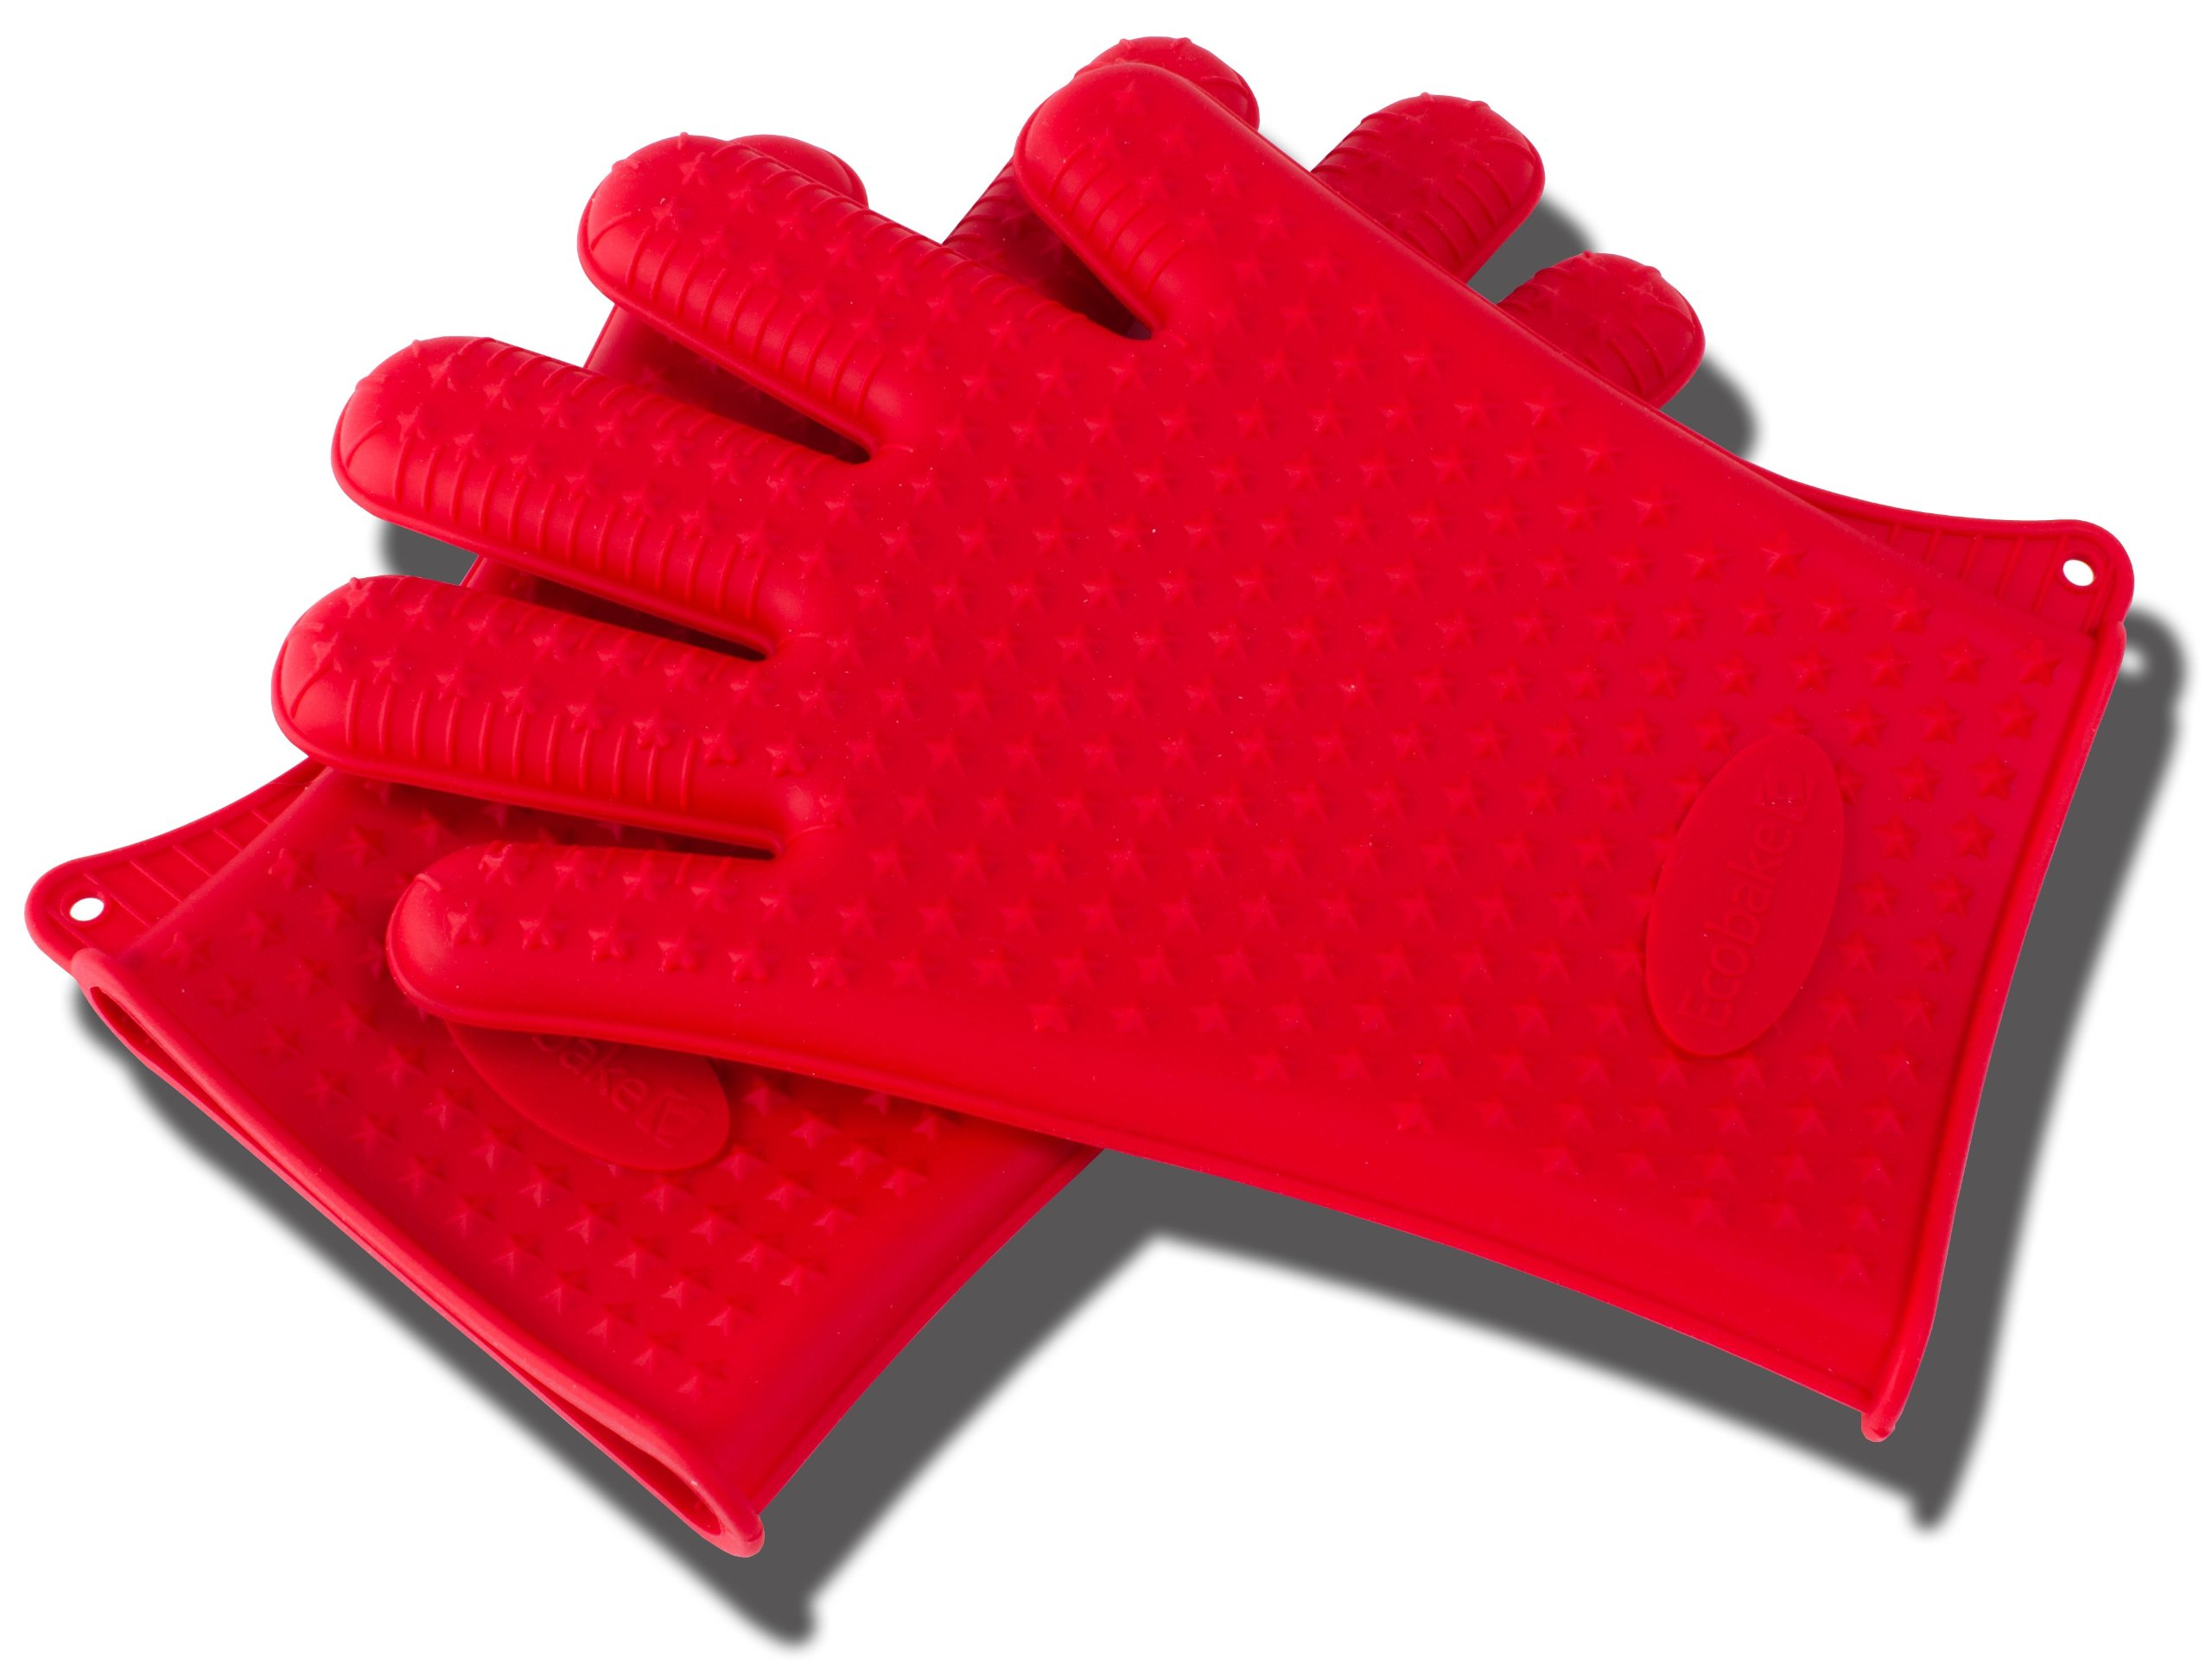 Red Silicone BBQ and Kitchen Glove Set. Great for Barbeque Grill and as Kitchen Potholder or Mitt for Baking and Cooking! 1 Pair